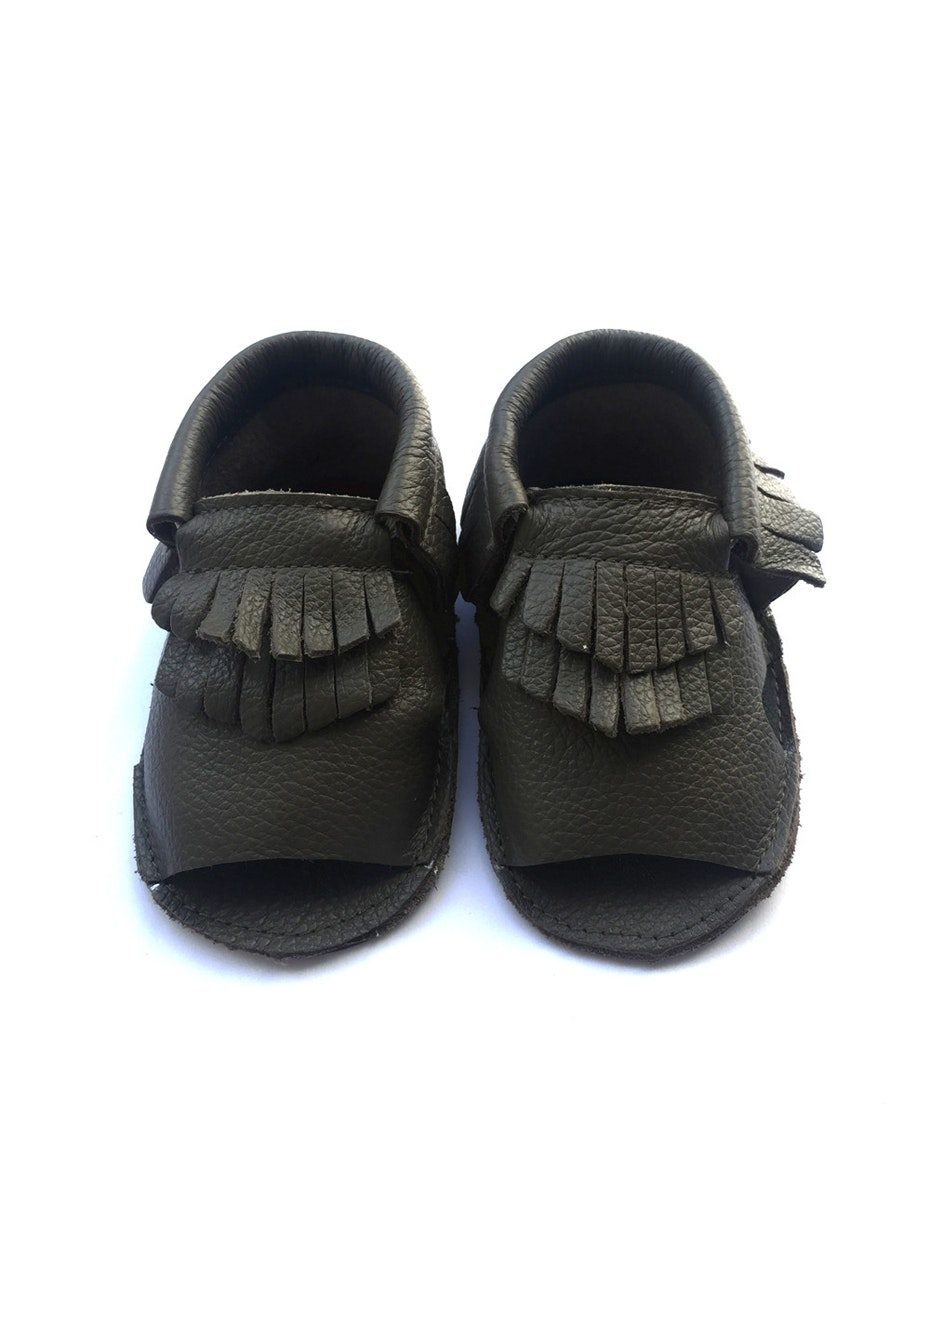 Baby  Leather Sandals - Black